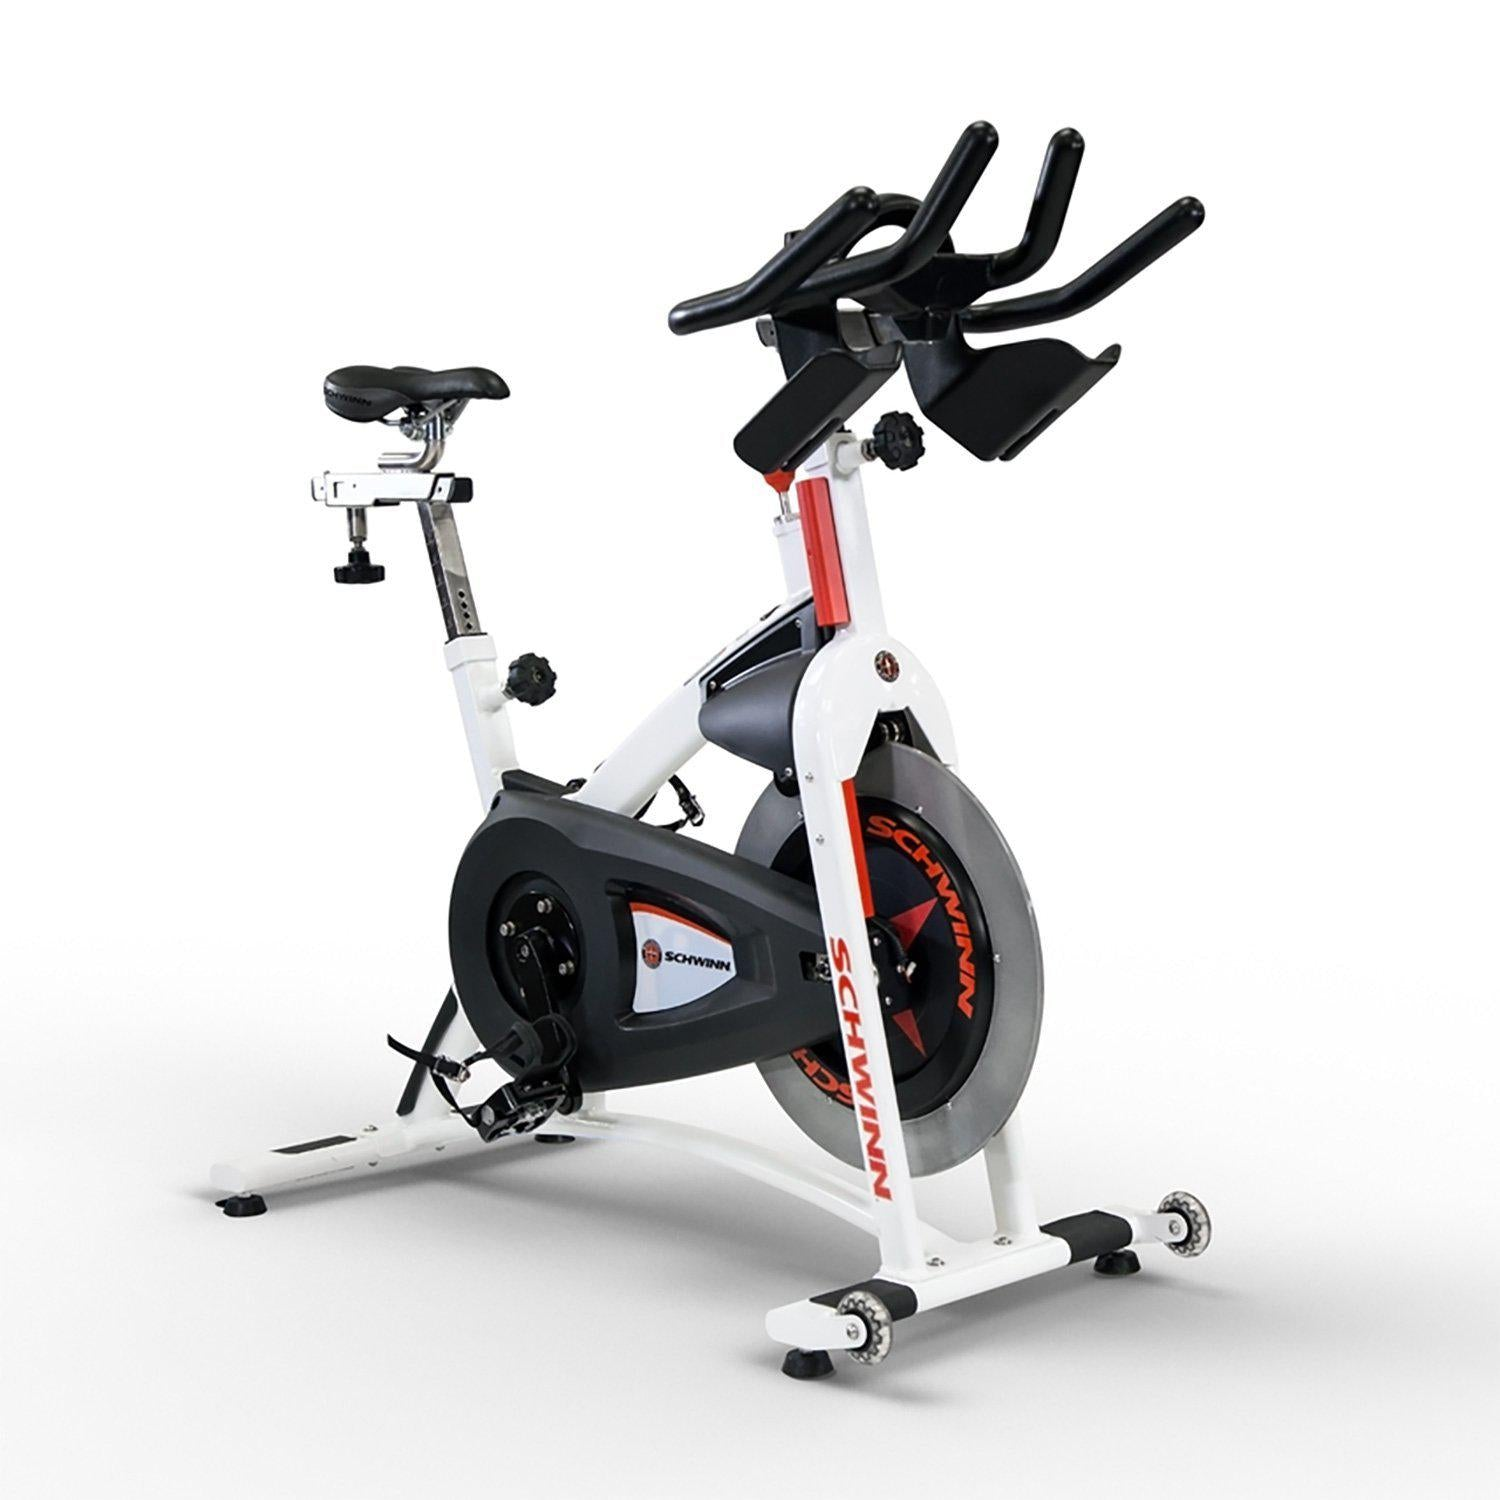 Schwinn AC Sport Indoor Cycle Exercise Bike-Exercise Bike-Schwinn-Cardio Online